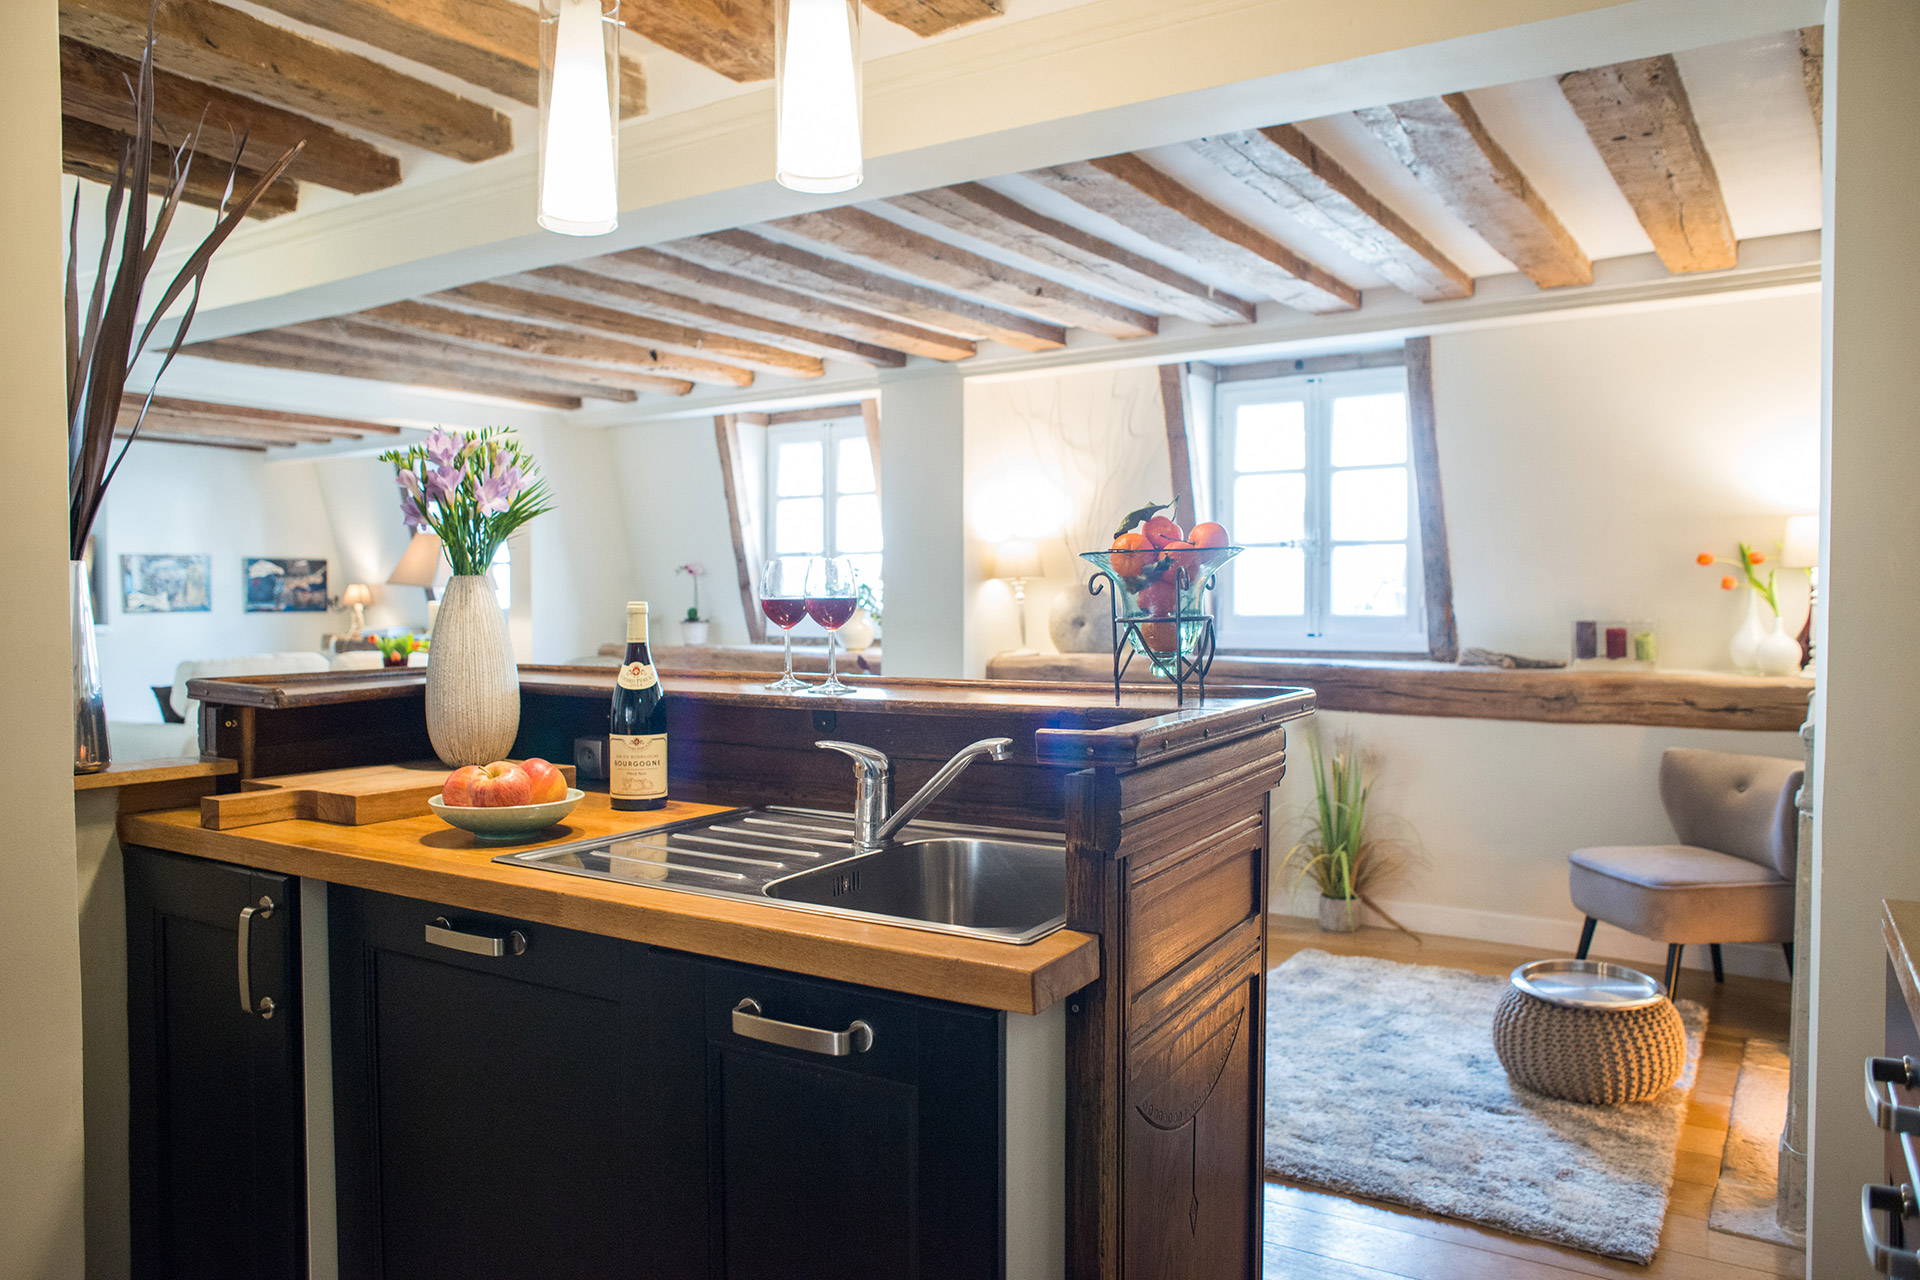 Cooking enthusiasts will find all the essentials in the Brittany vacation rental offered by Paris Perfect